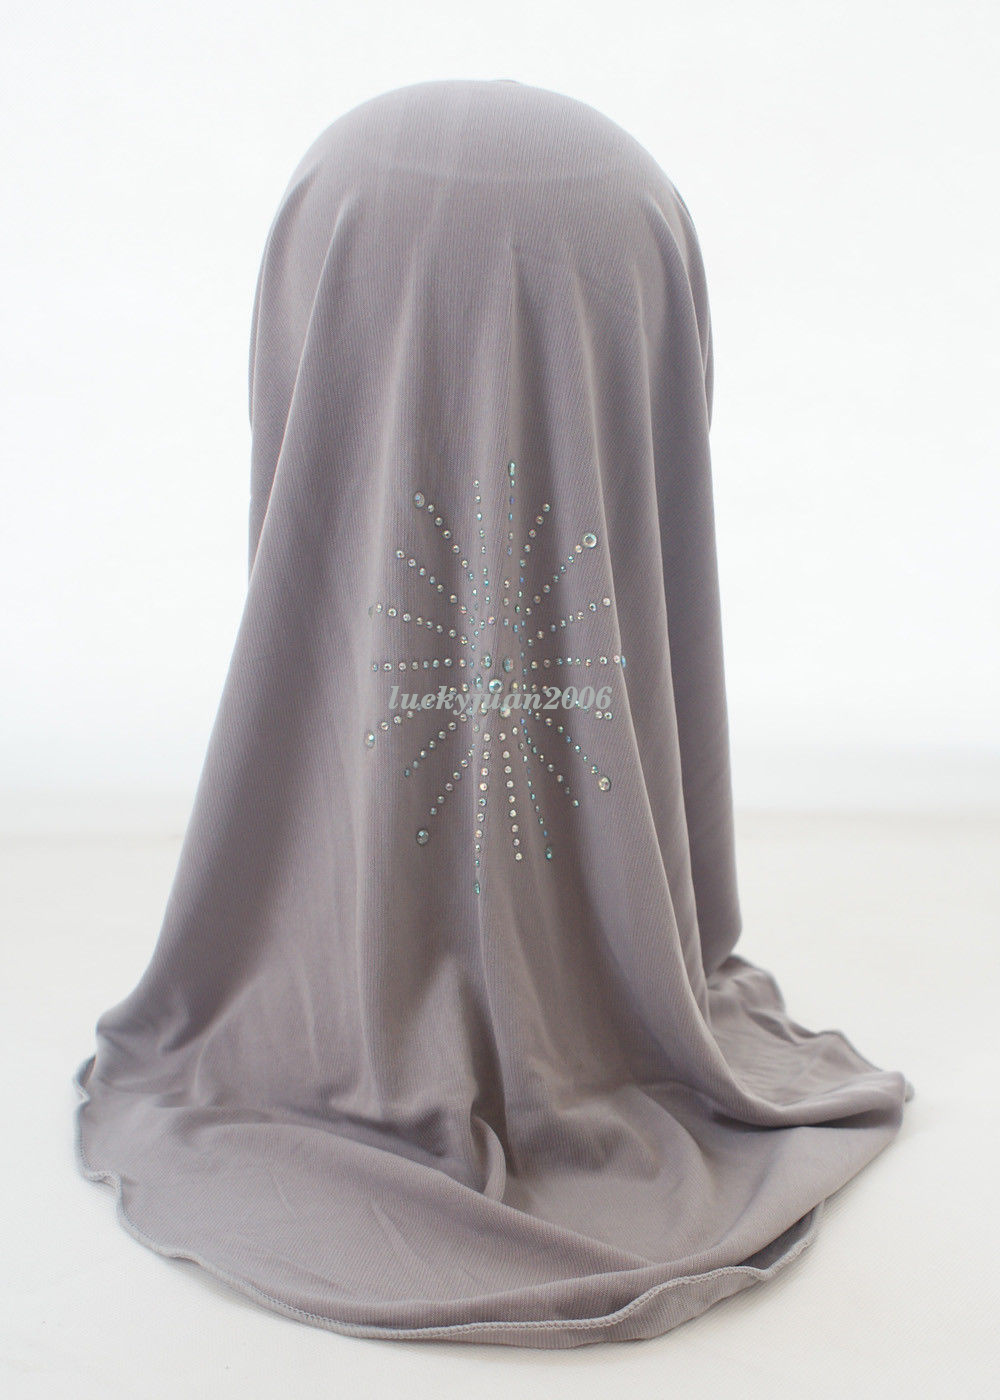 Girls-Kids-Muslim-Hijab-Hats-Islamic-Arab-Scarf-Caps-Shawls-Amira-Headwear-3-8Y thumbnail 56